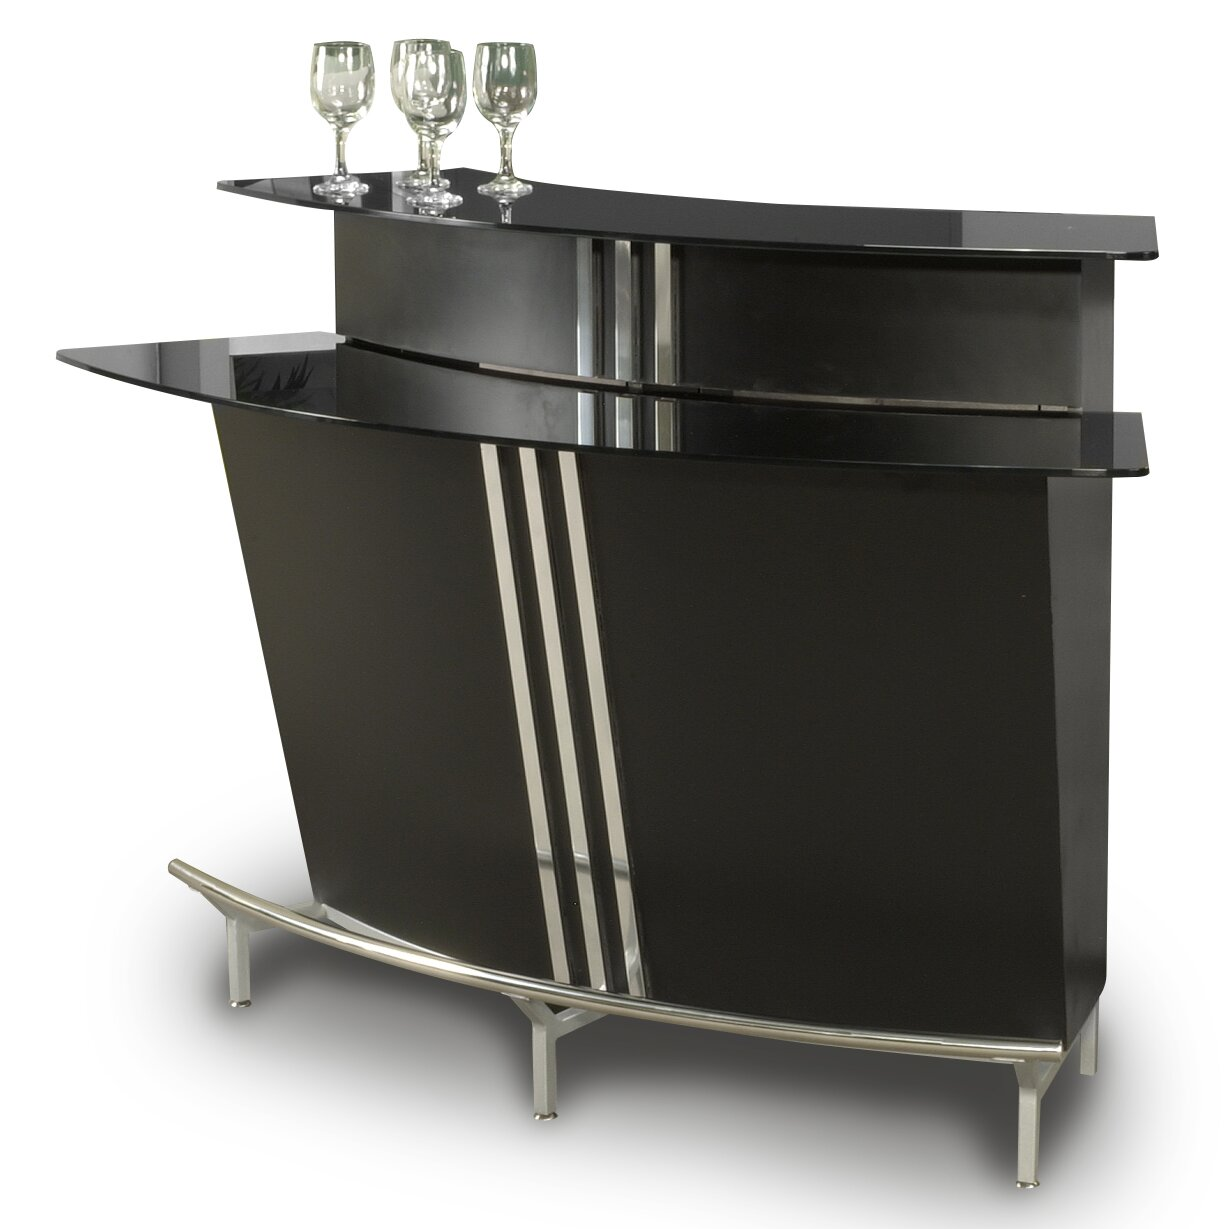 Chintaly Broadway Bar With Wine Storage Reviews Wayfair